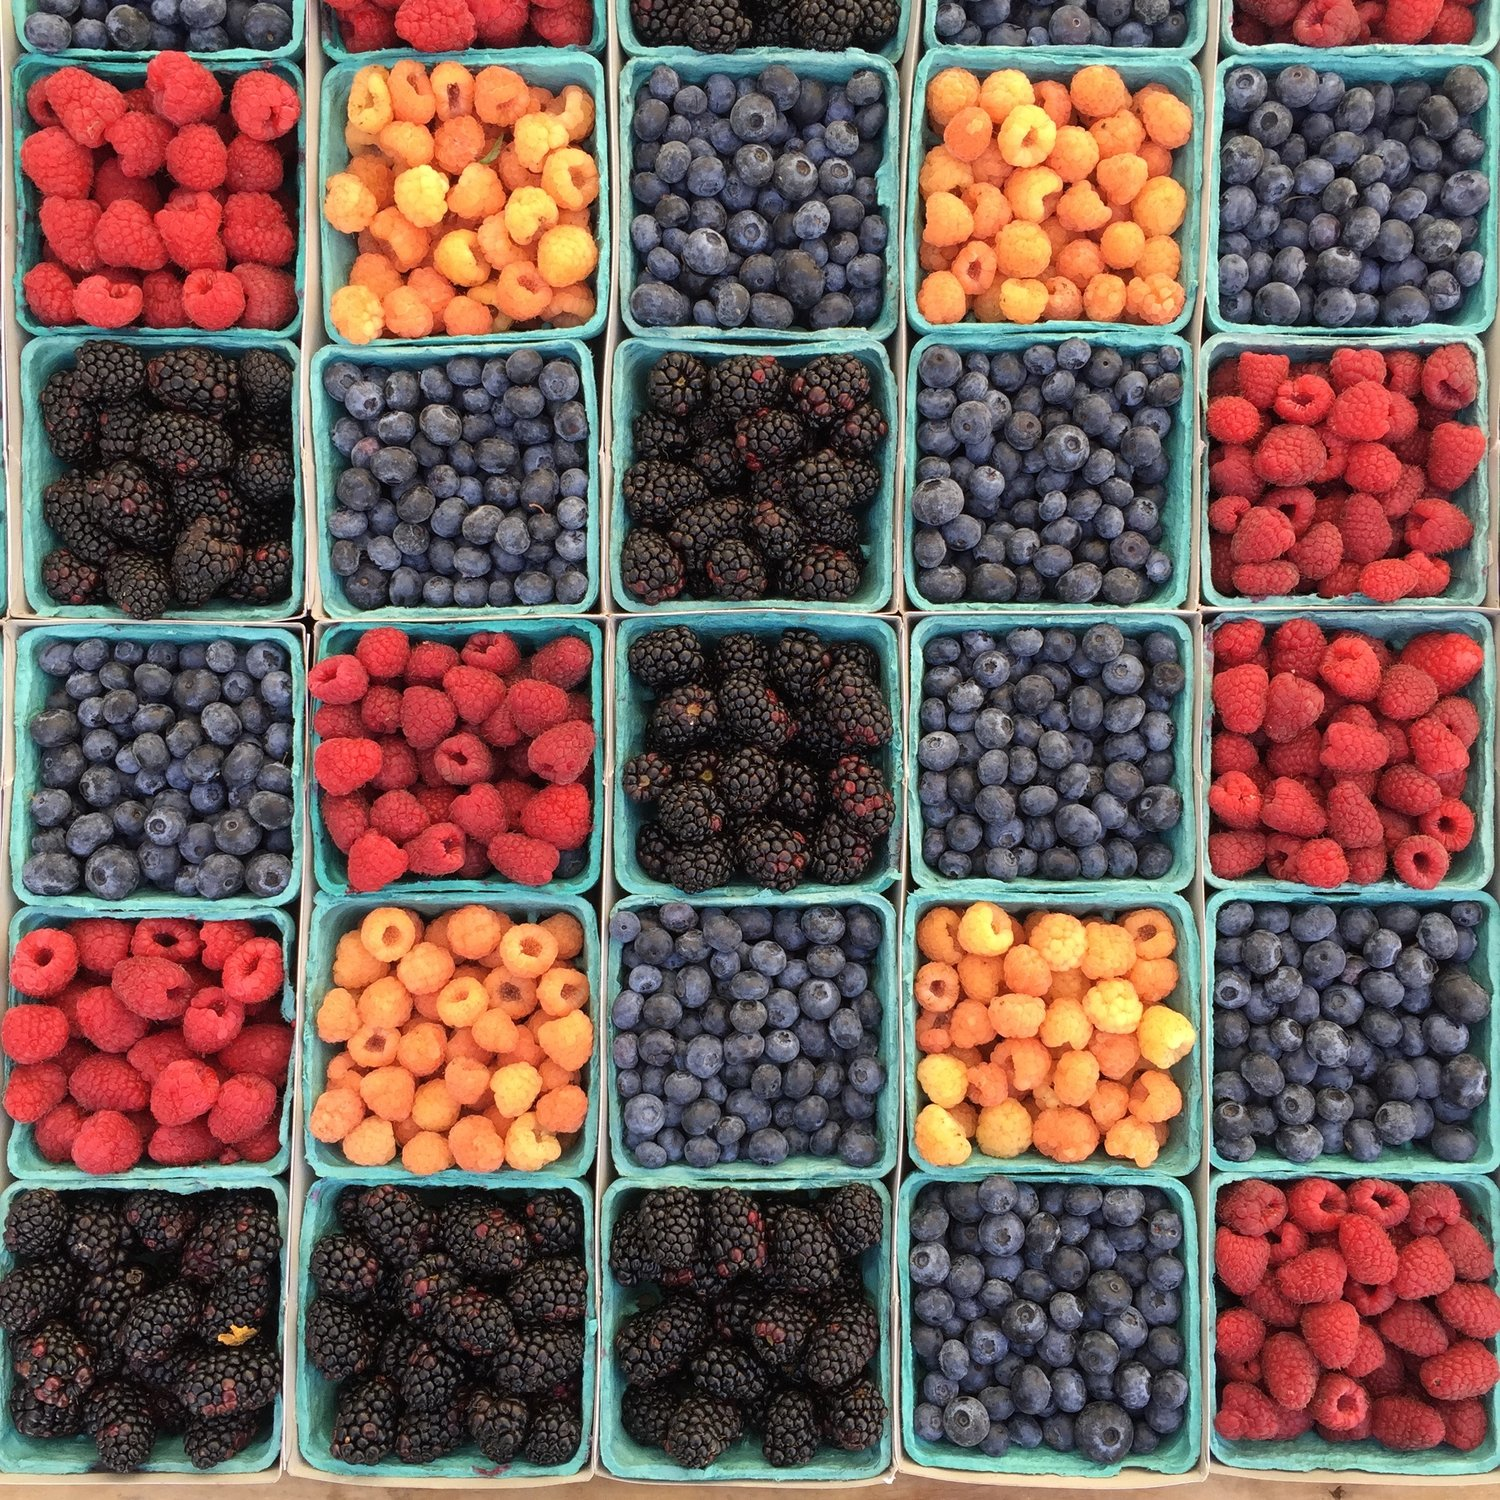 The blueberries are particularly recommended because they contain the antioxidative polyphenols.